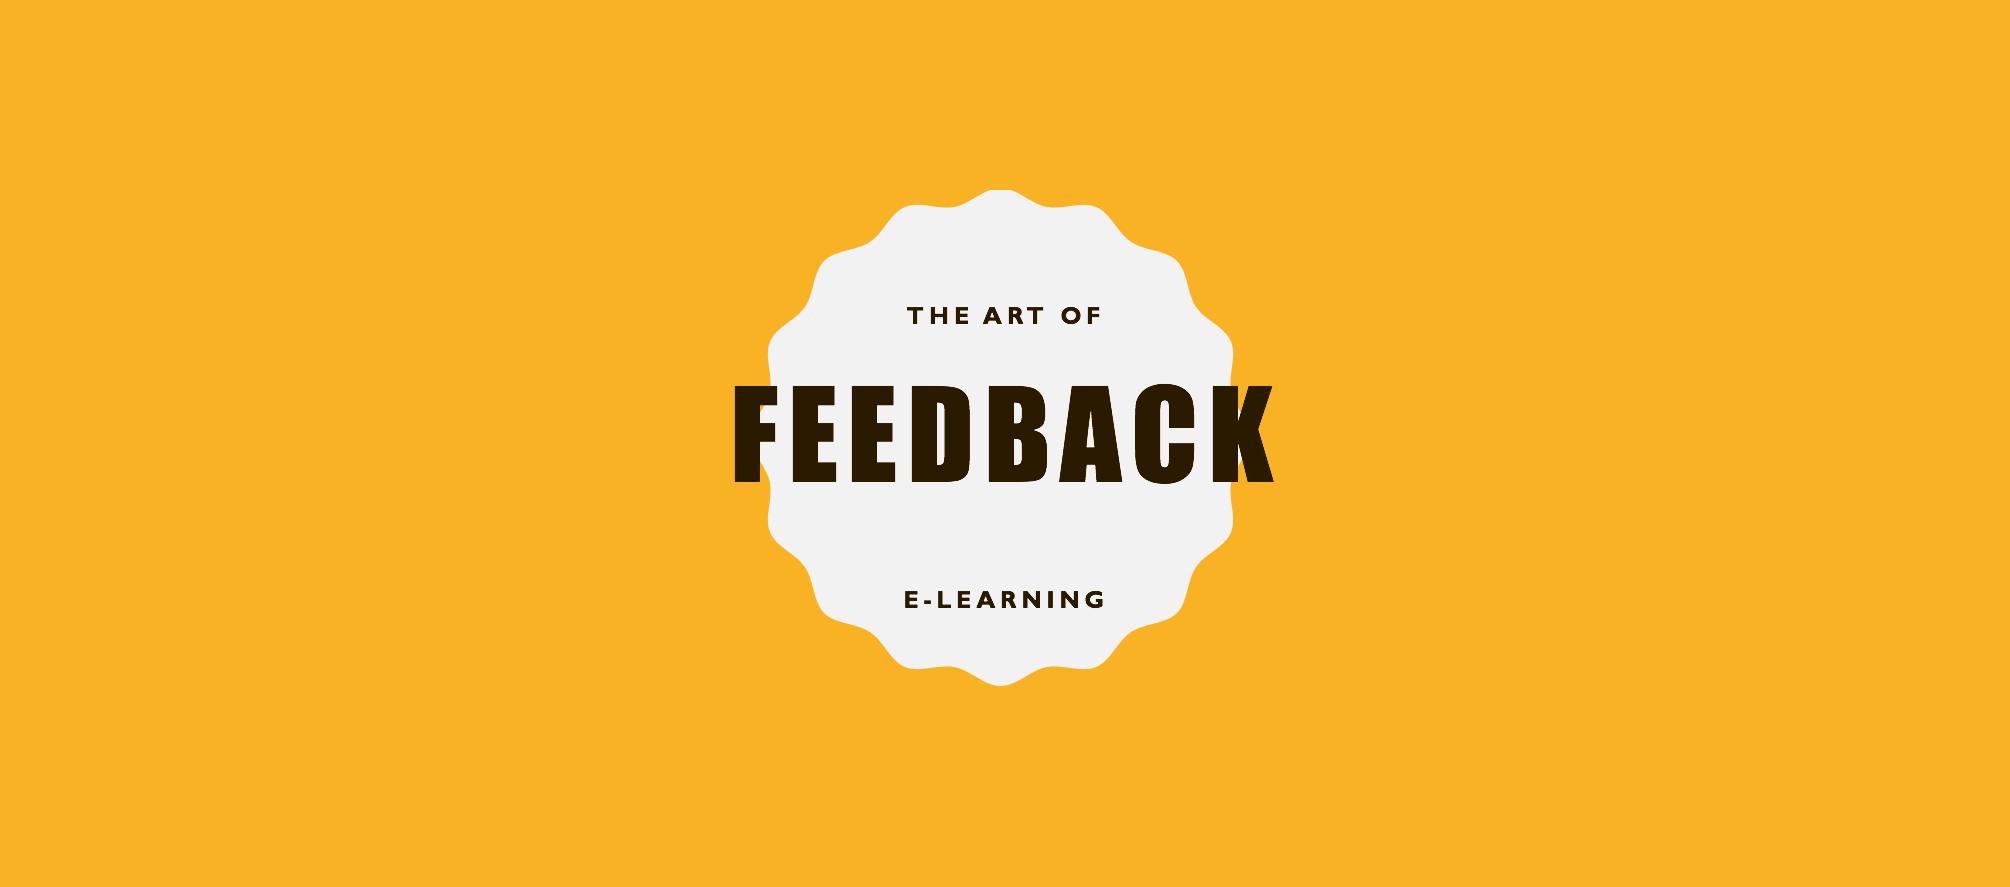 The Art of feedback - e-learning